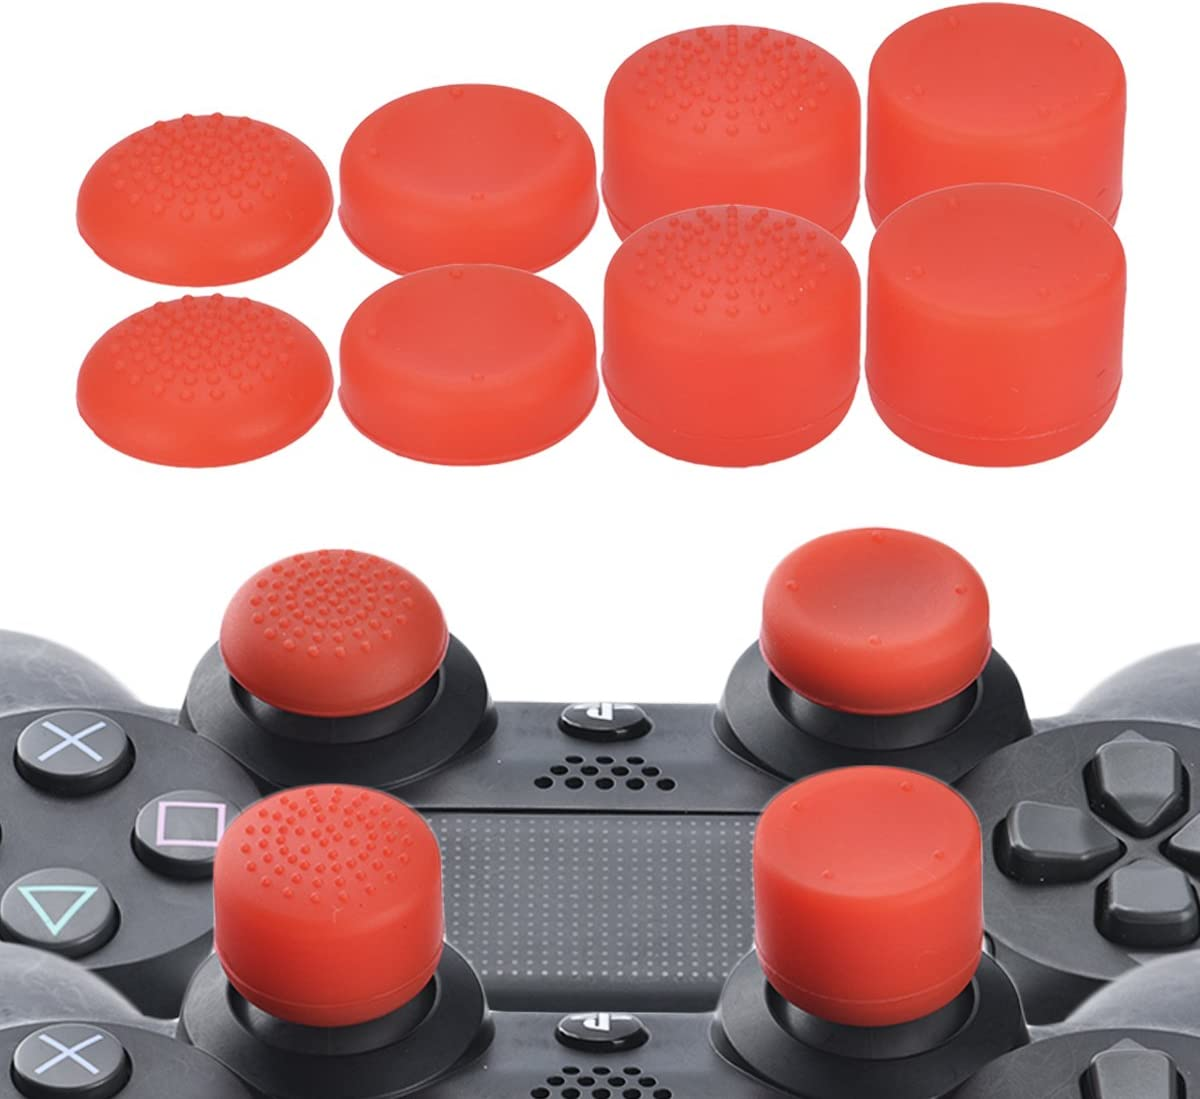 2 x Red Analog Thumb Stick Grips Caps Joystick for PS3 PS4 XBOX ONE 360 Wii U